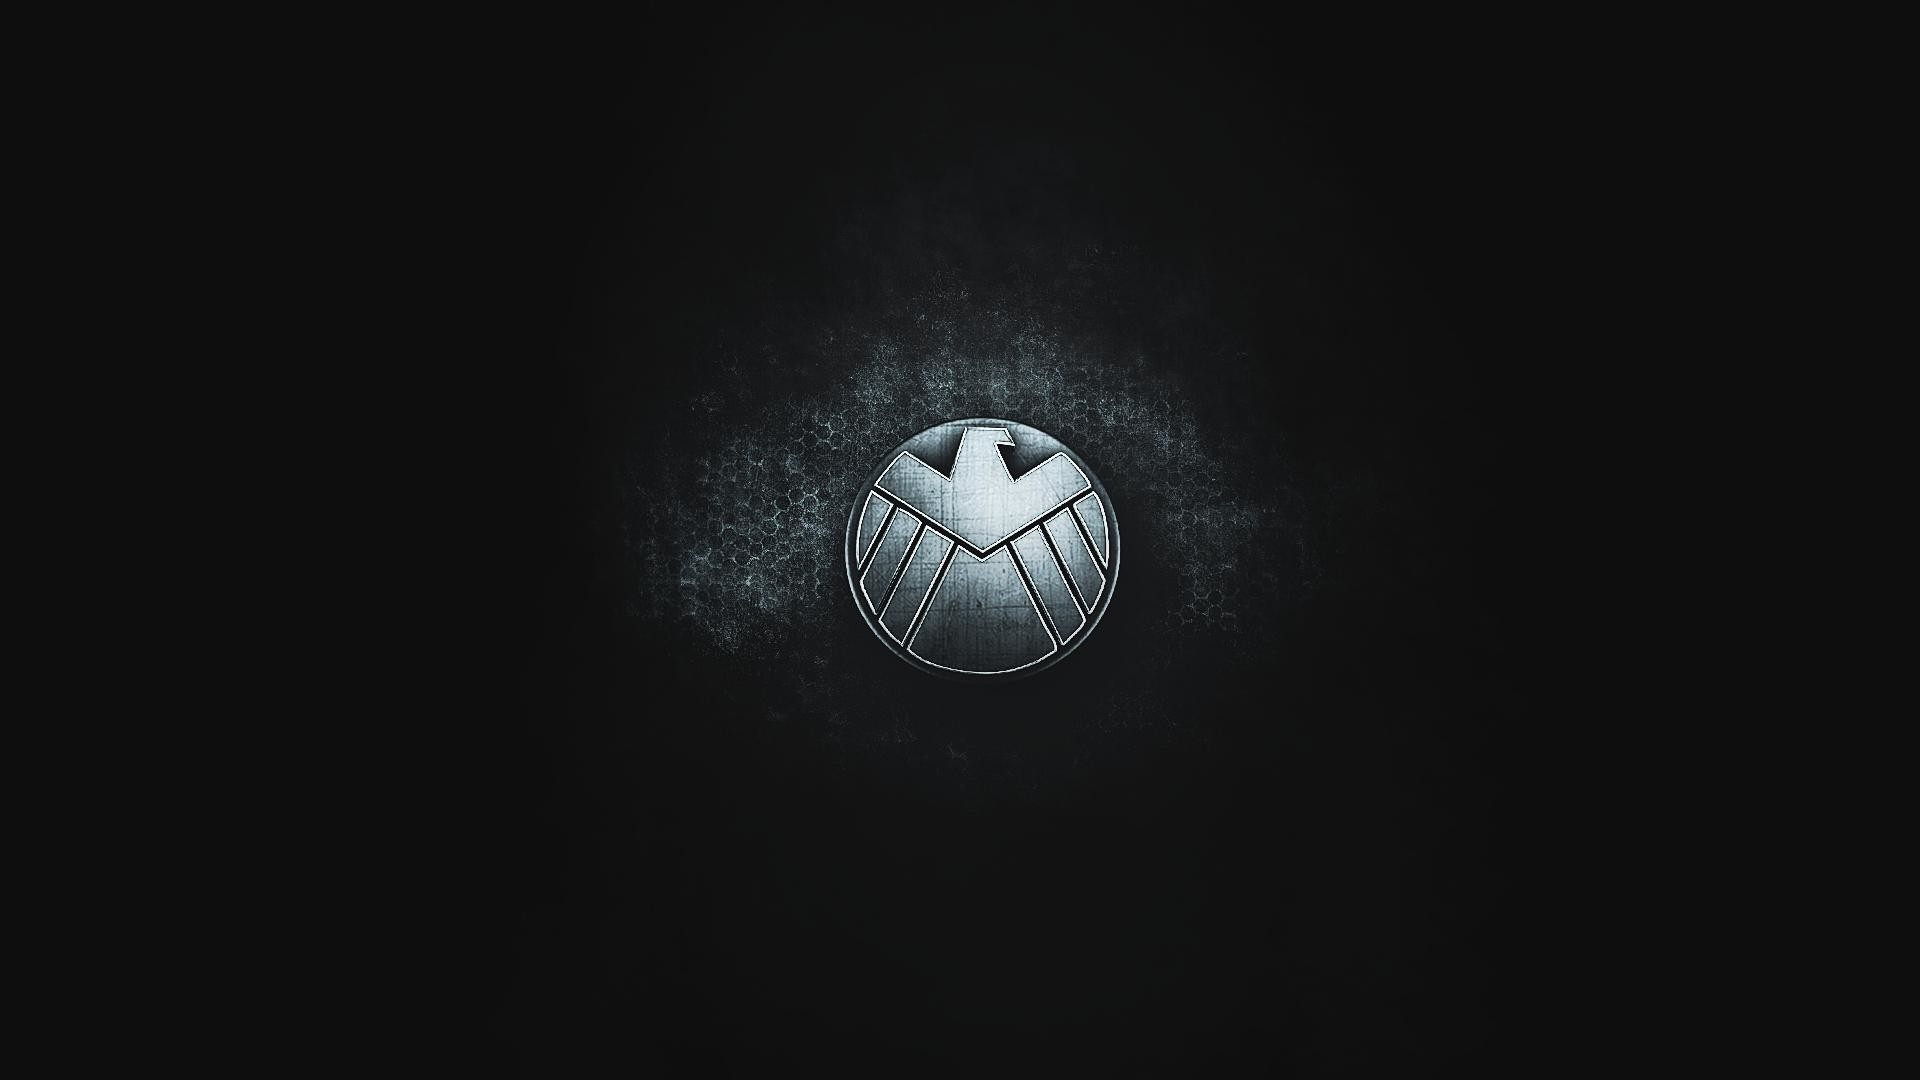 1920x1080 wallpaper.wiki-HD-Wallpapers-Agents-Of-Shield-Free-